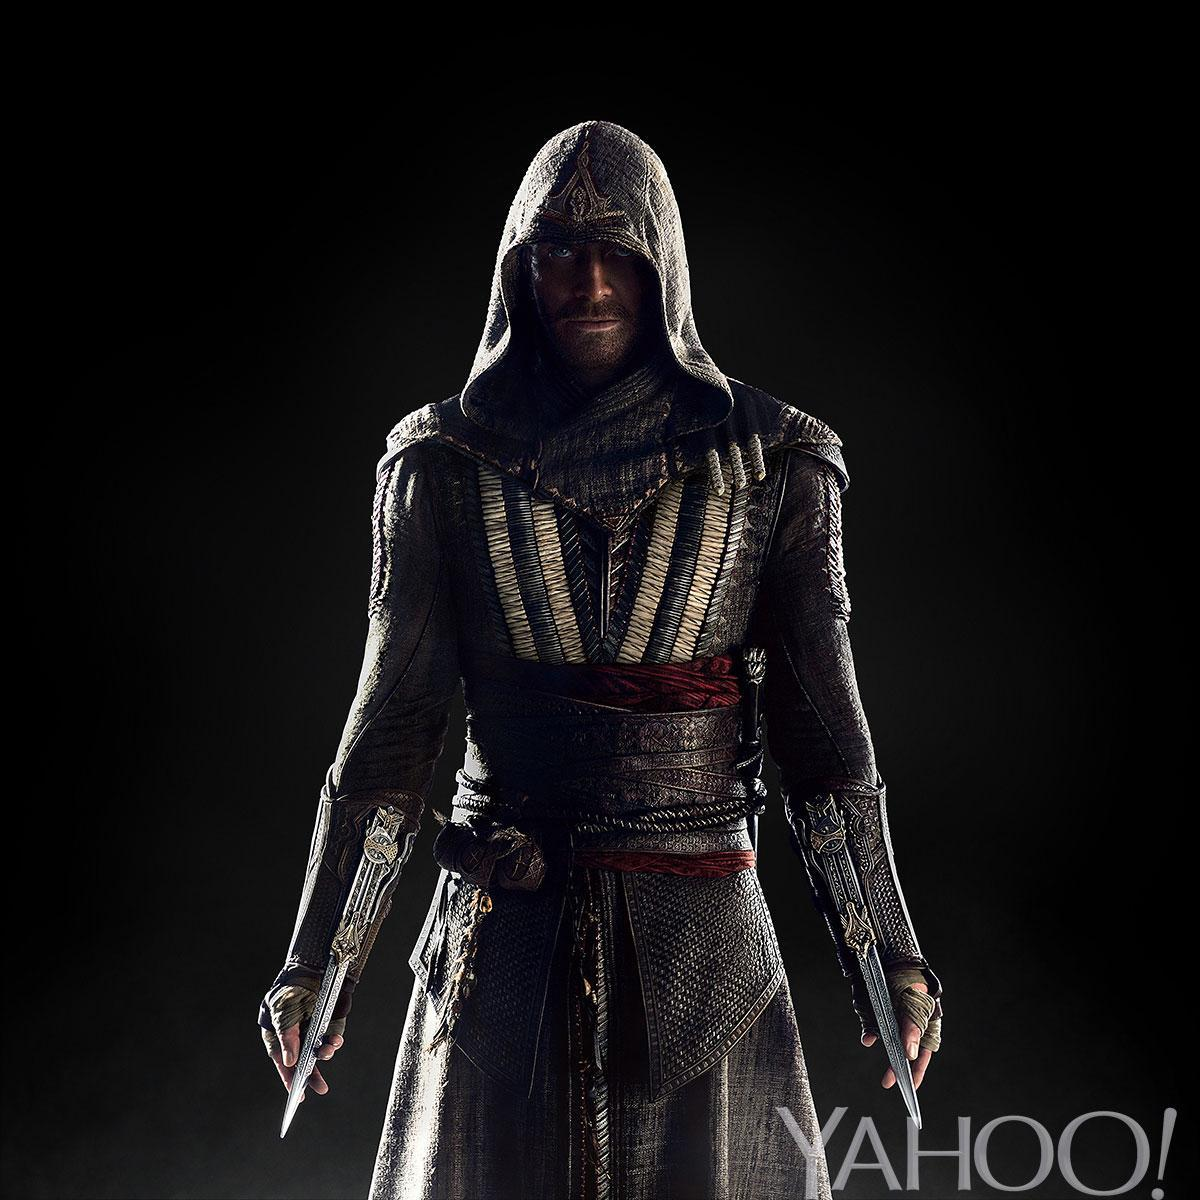 Assassin's Creed Image Finds Michael Fassbender's Character In Isolation